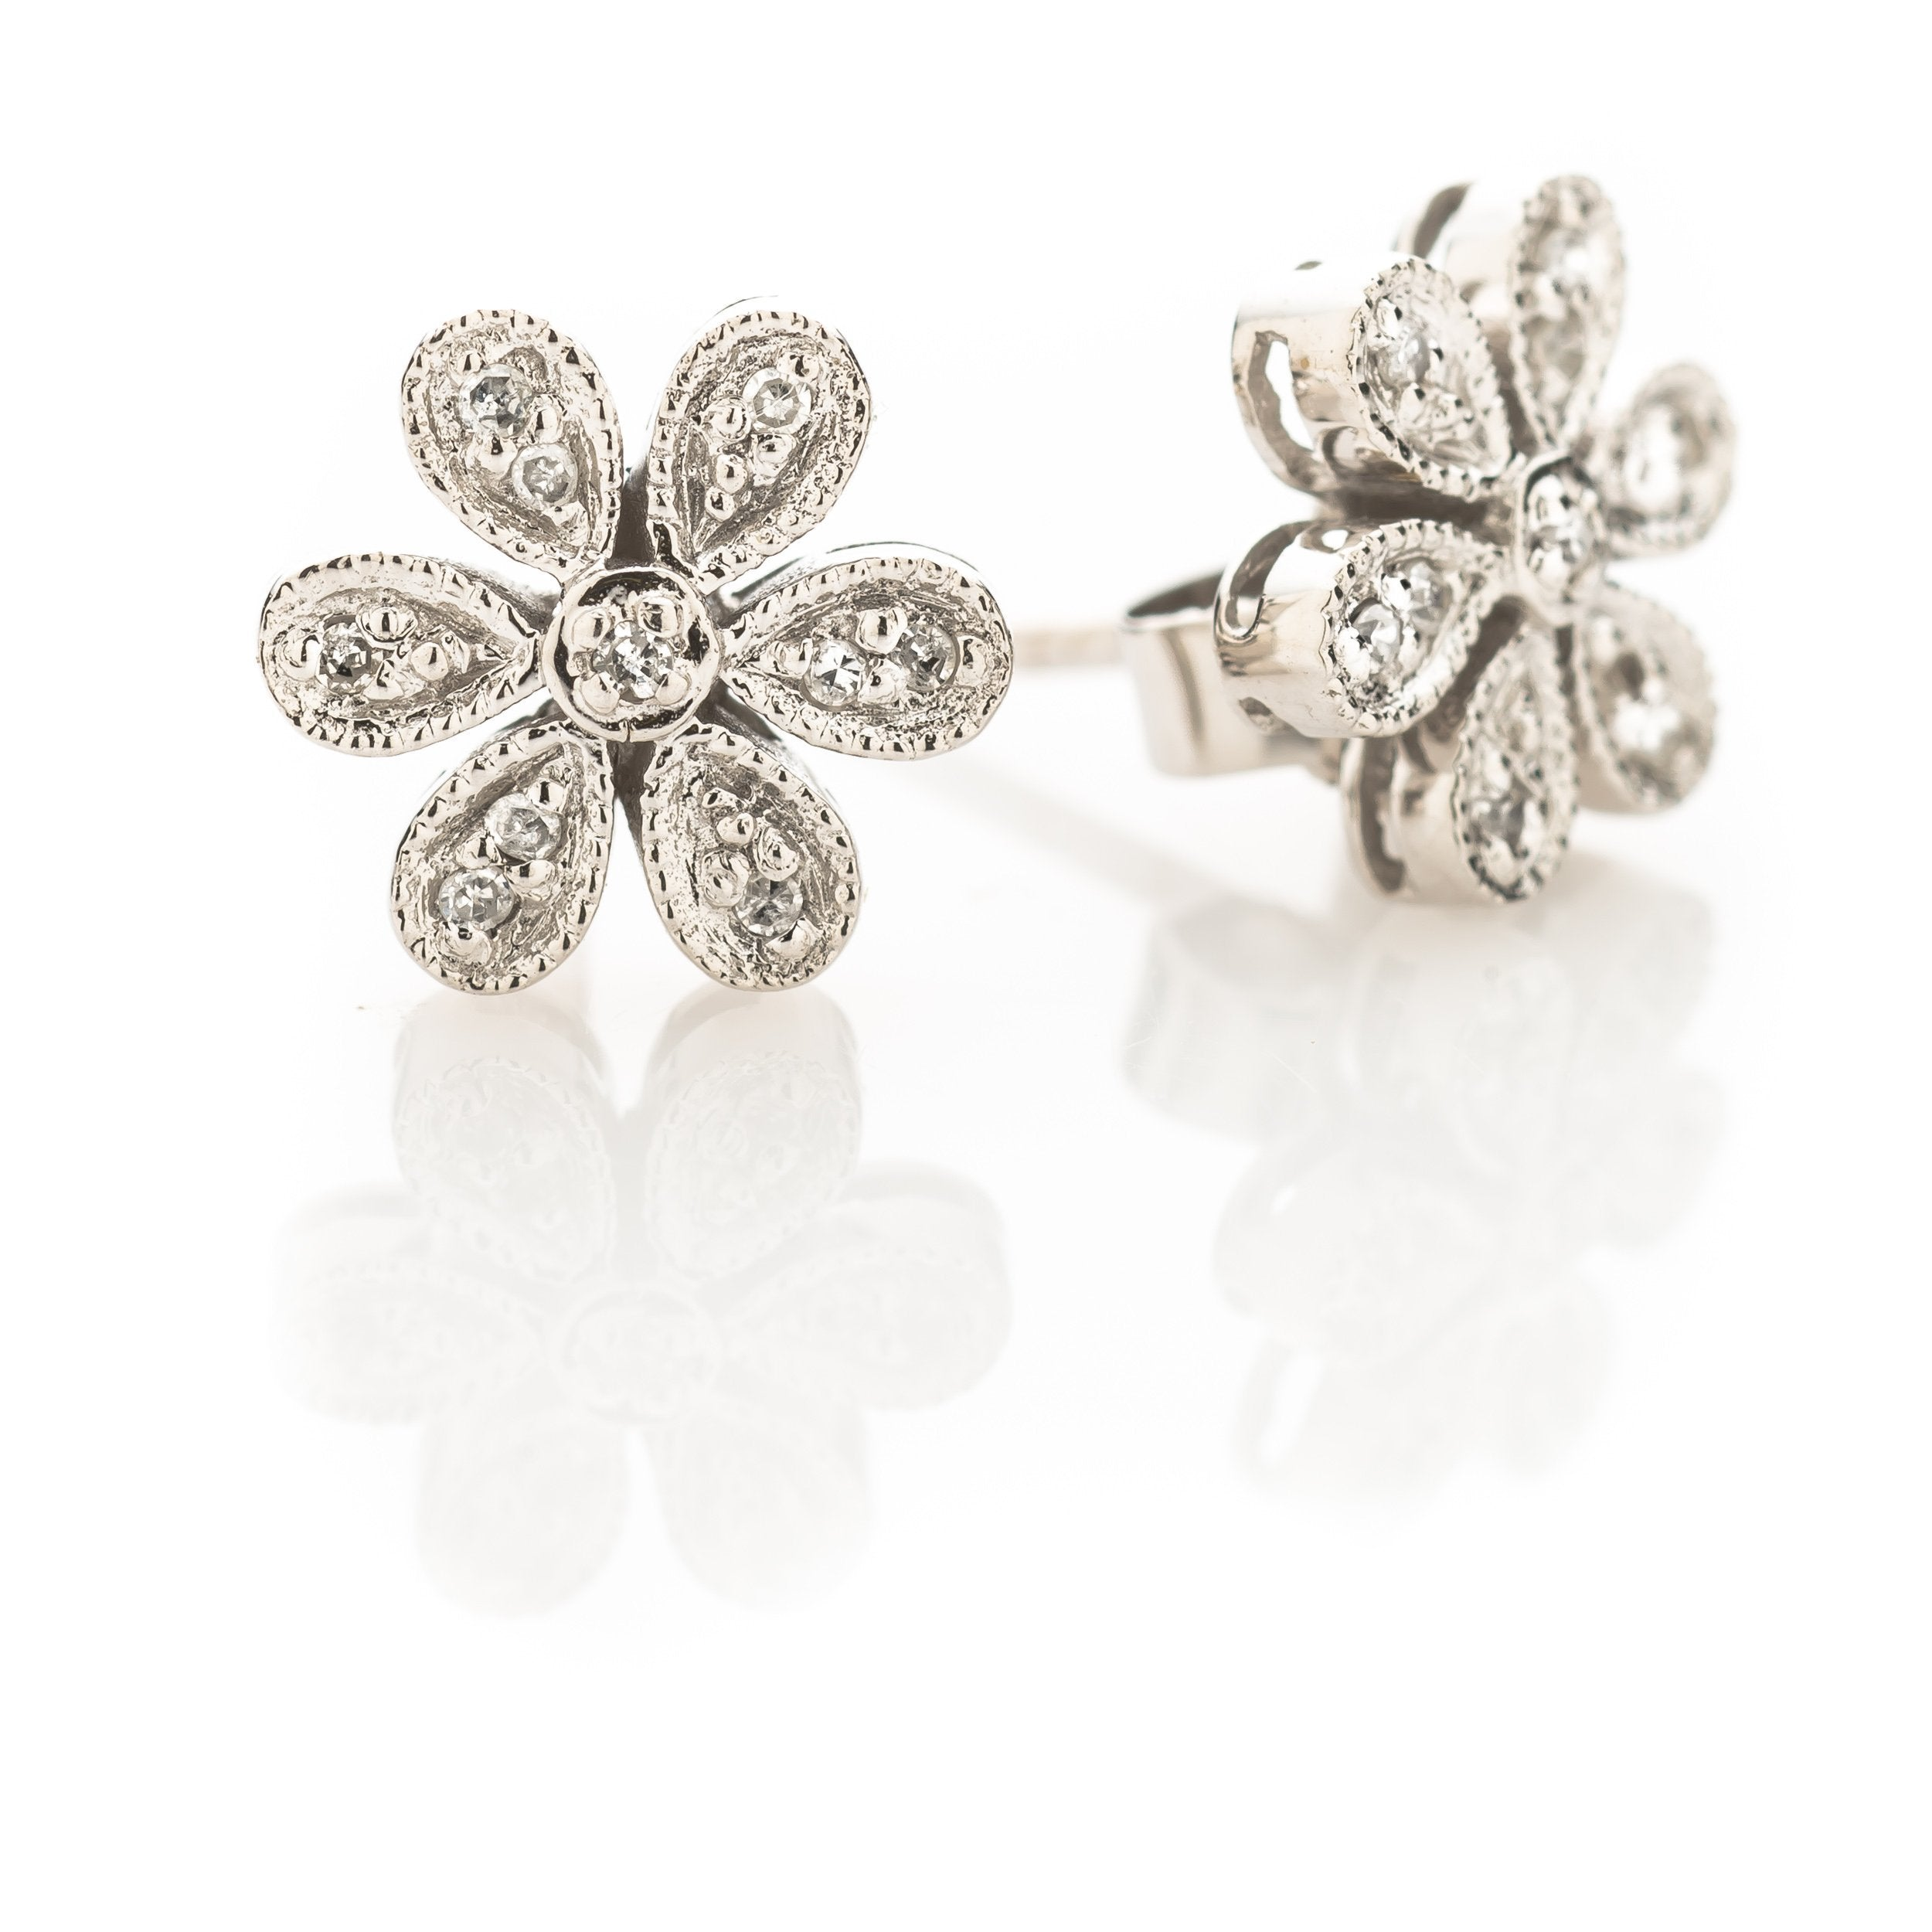 Daisy Diamond Duke Earrings